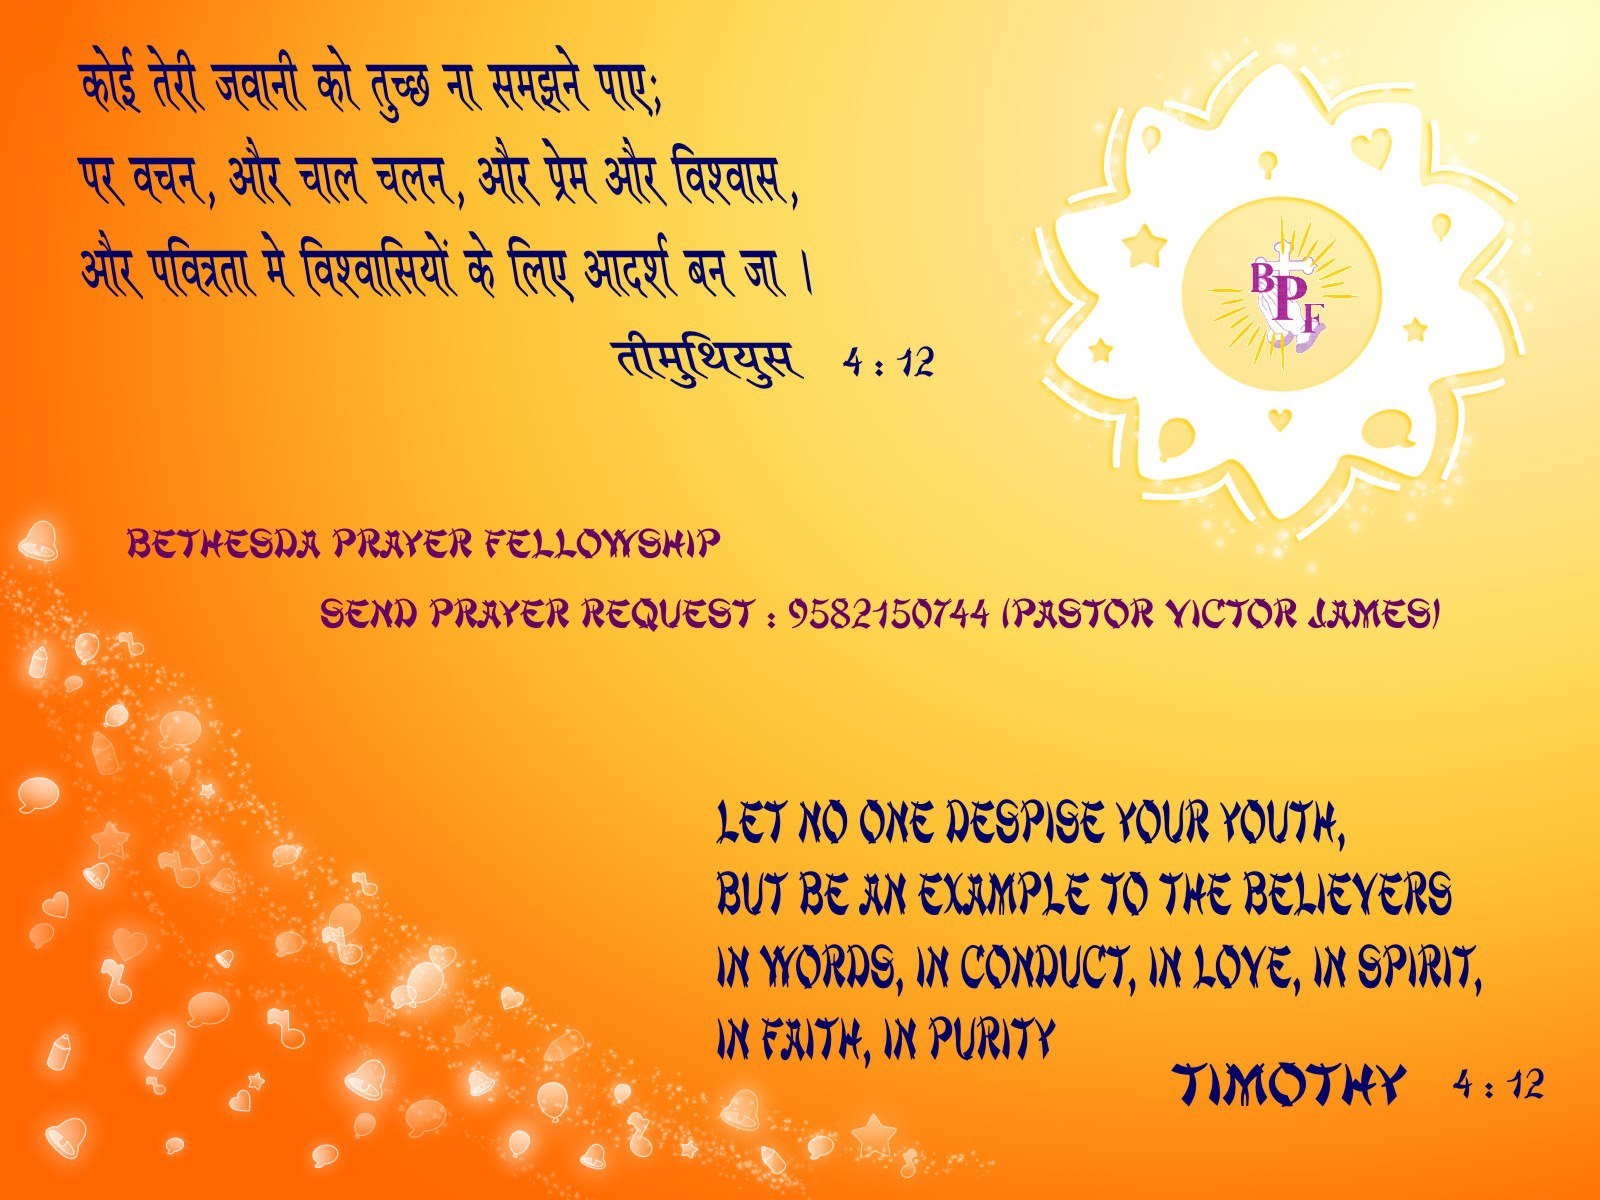 Indian Flag Wallpaper With Quotes In Hindi Download Hindi Bible Verses Wallpapers Gallery